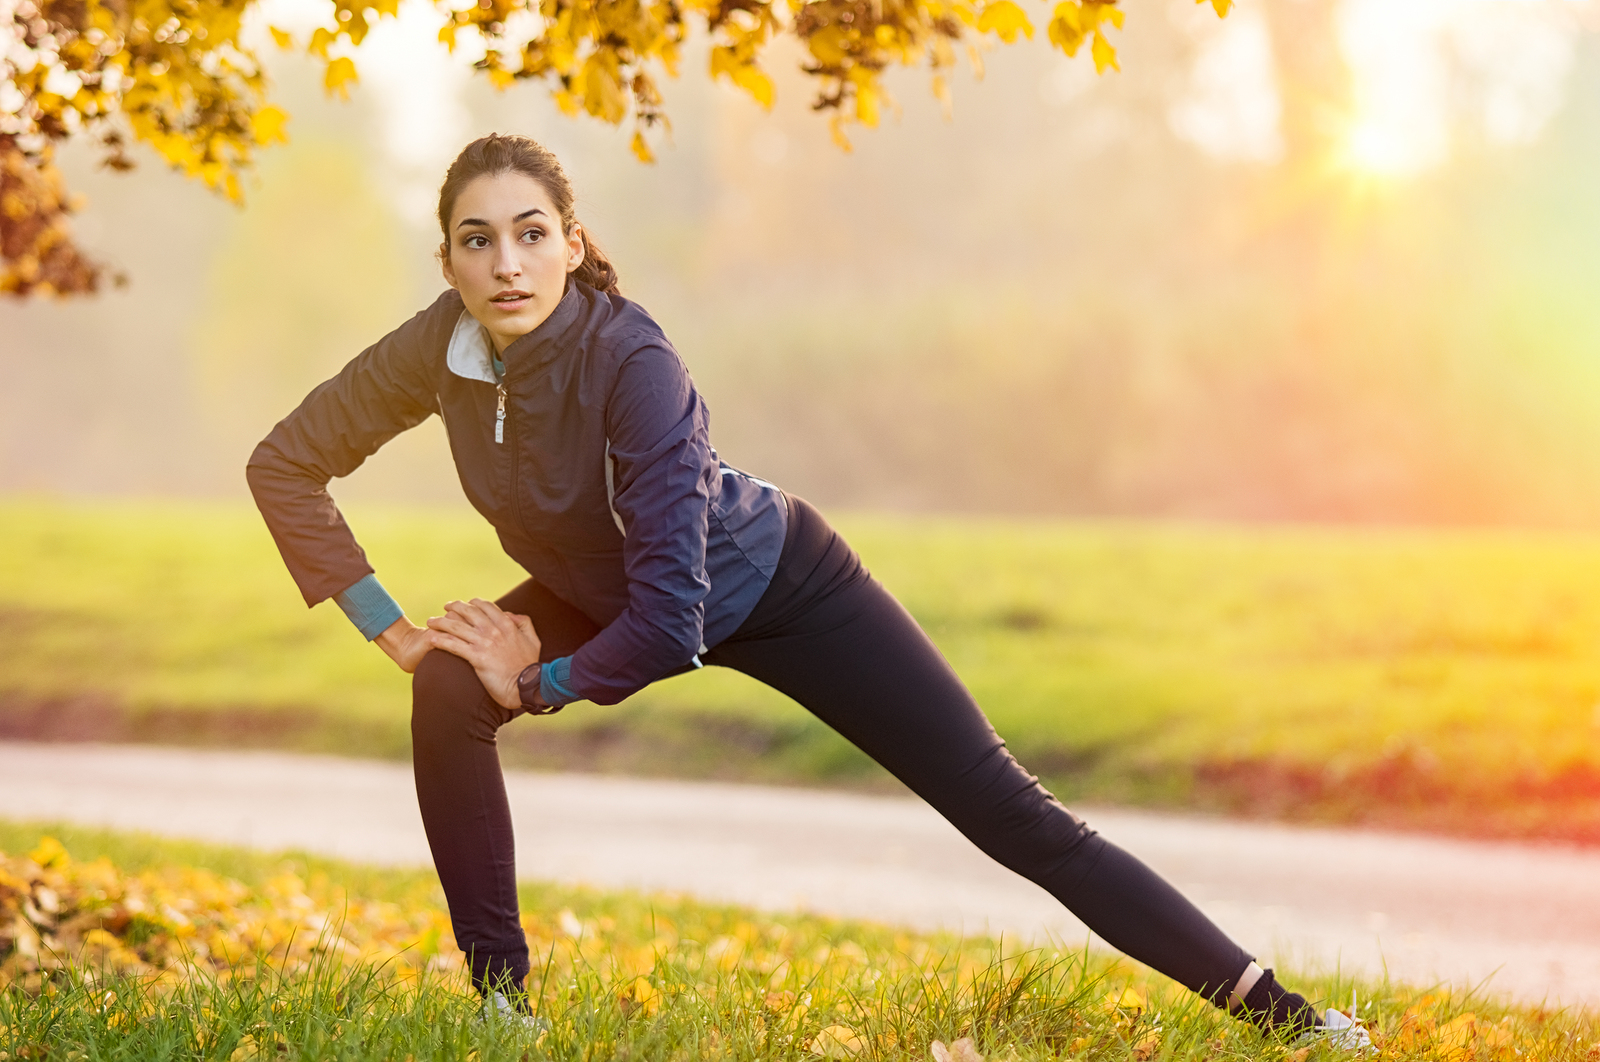 Young woman stretching and warming up at park during sunset. Att